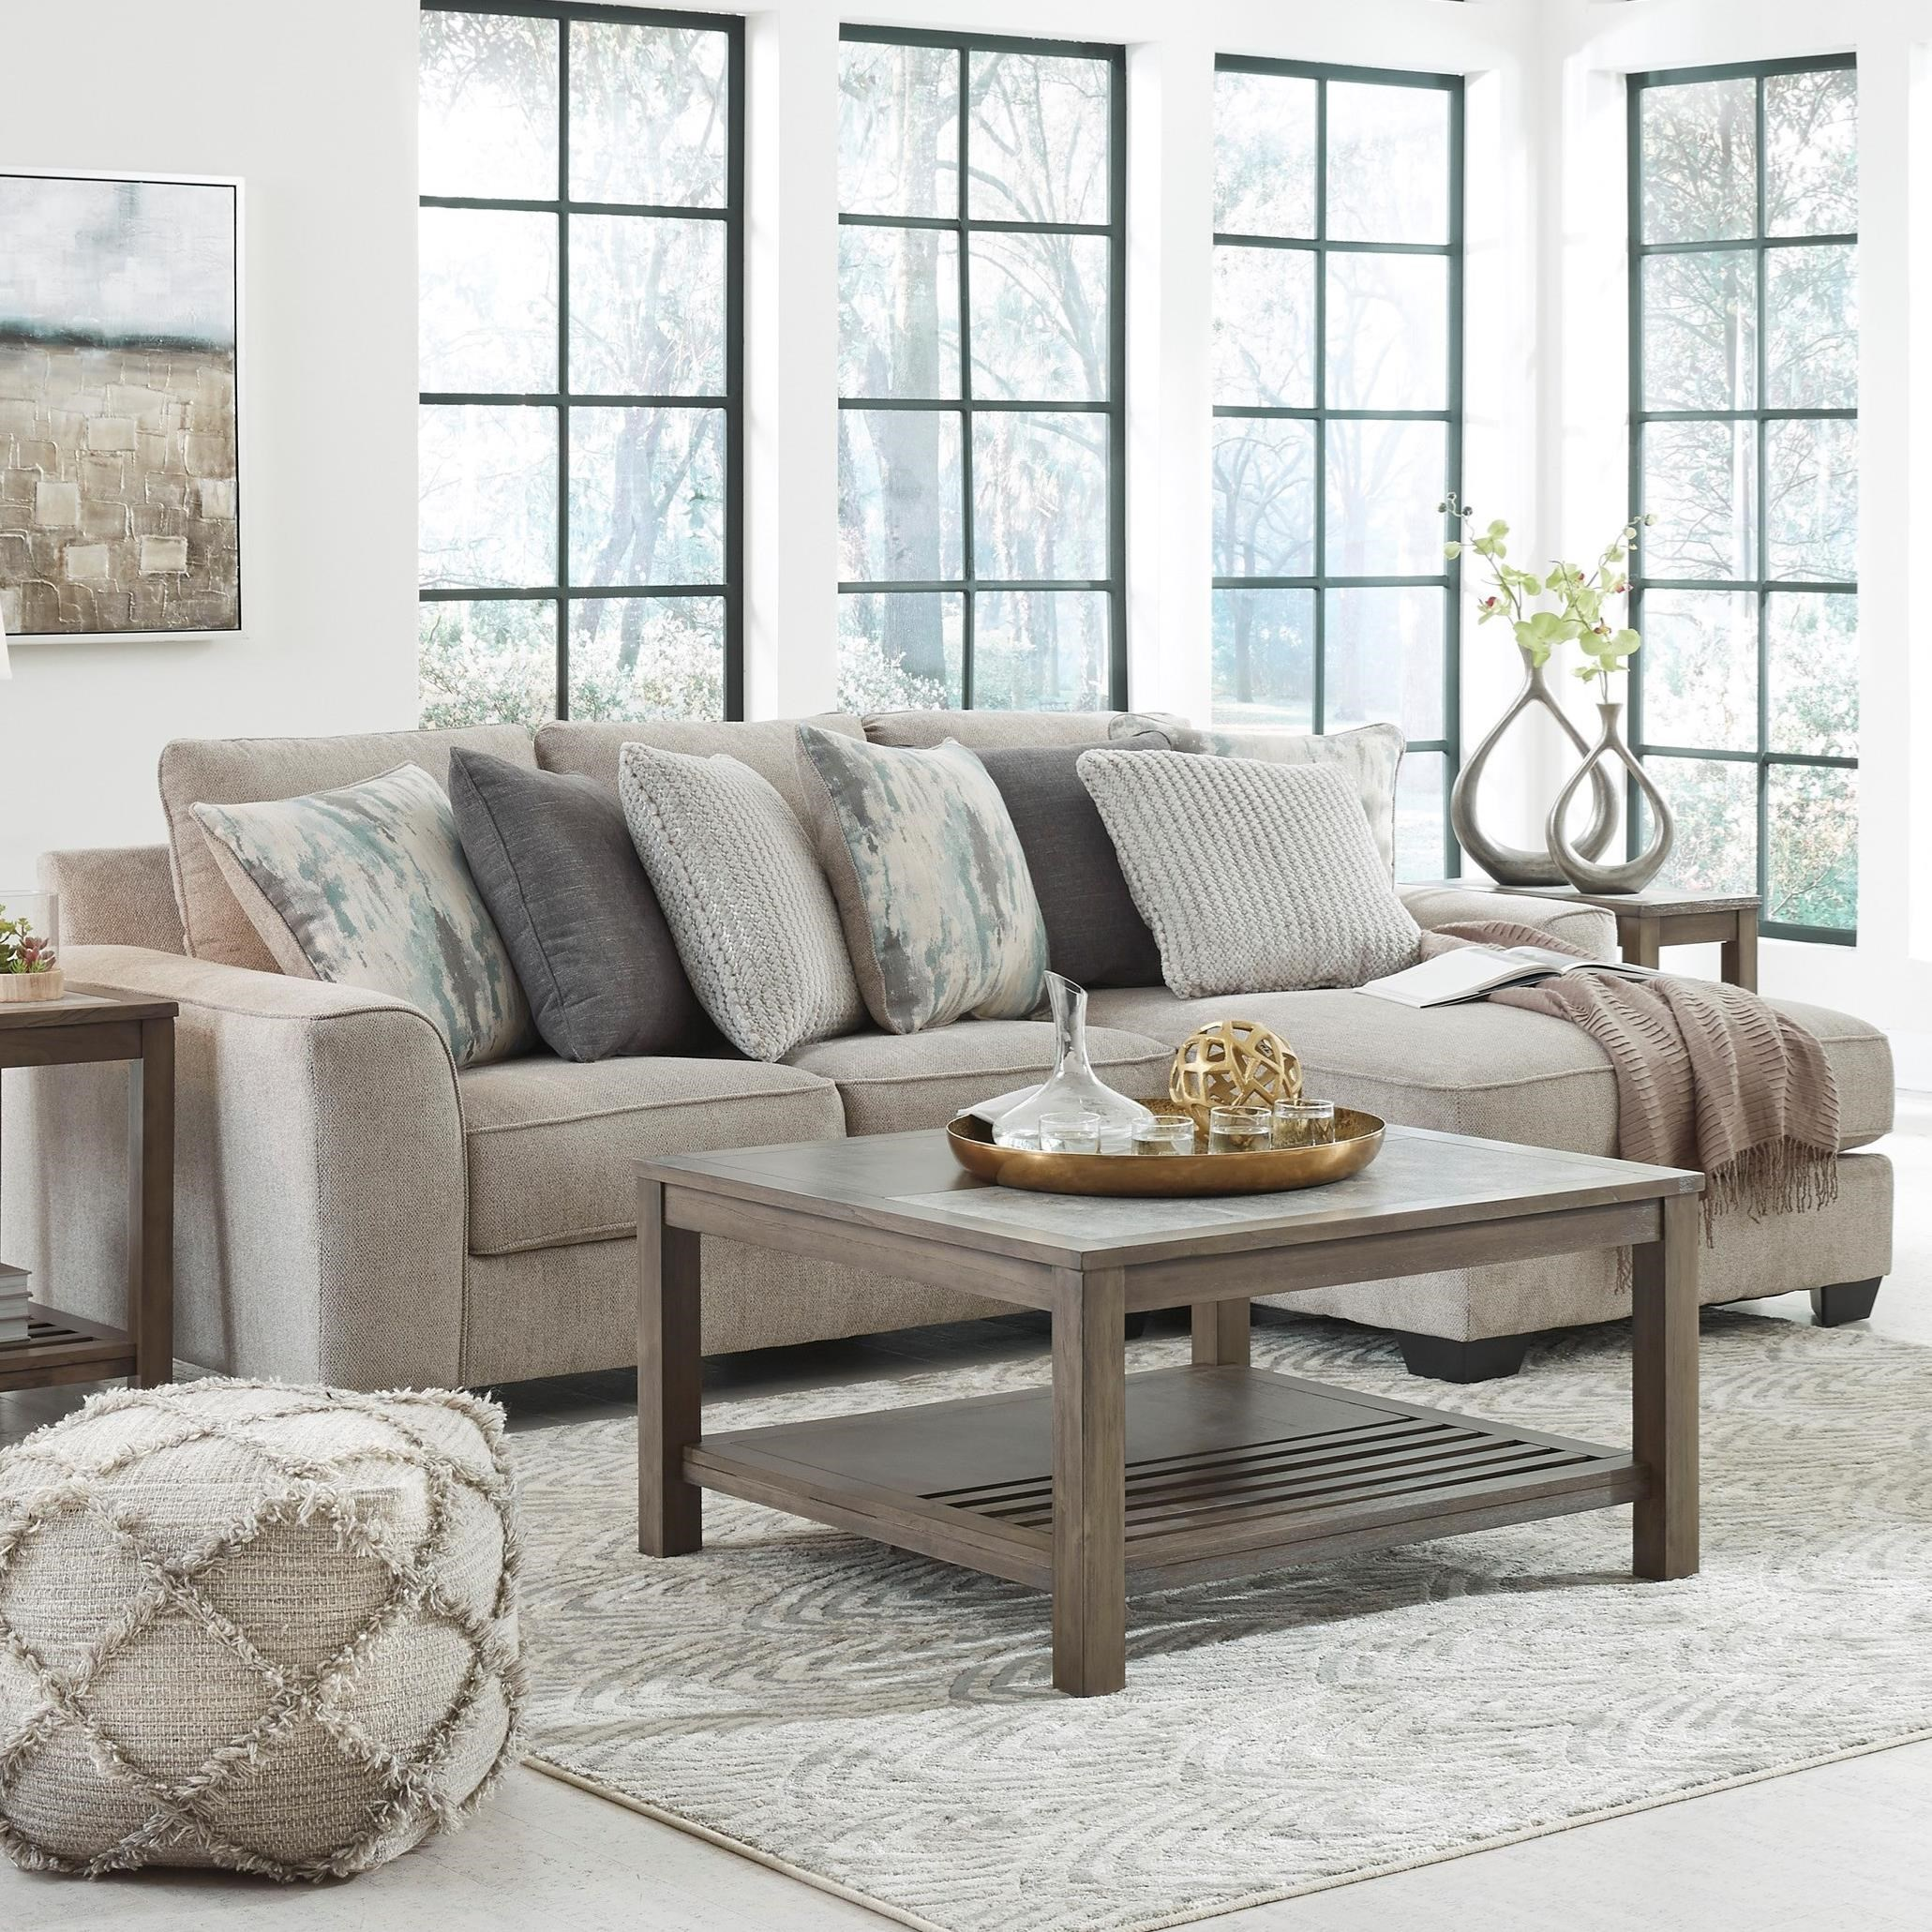 Ardsley 2-Piece Sectional with Right Chaise by Benchcraft at Carolina Direct